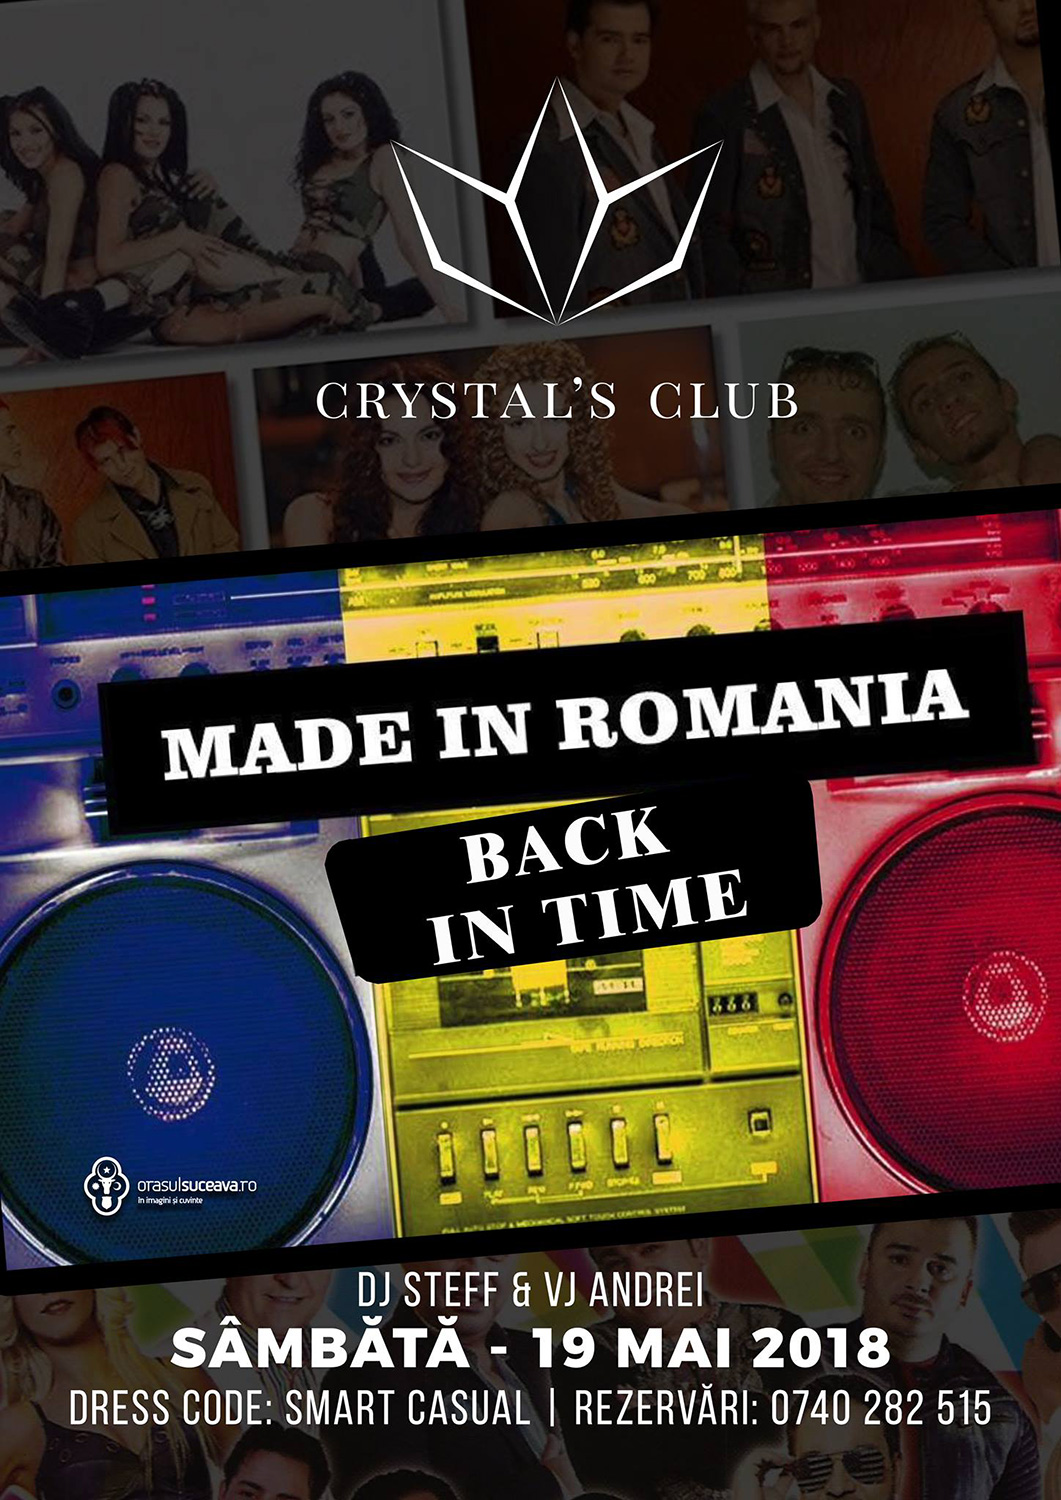 Made in Romania - Back in time